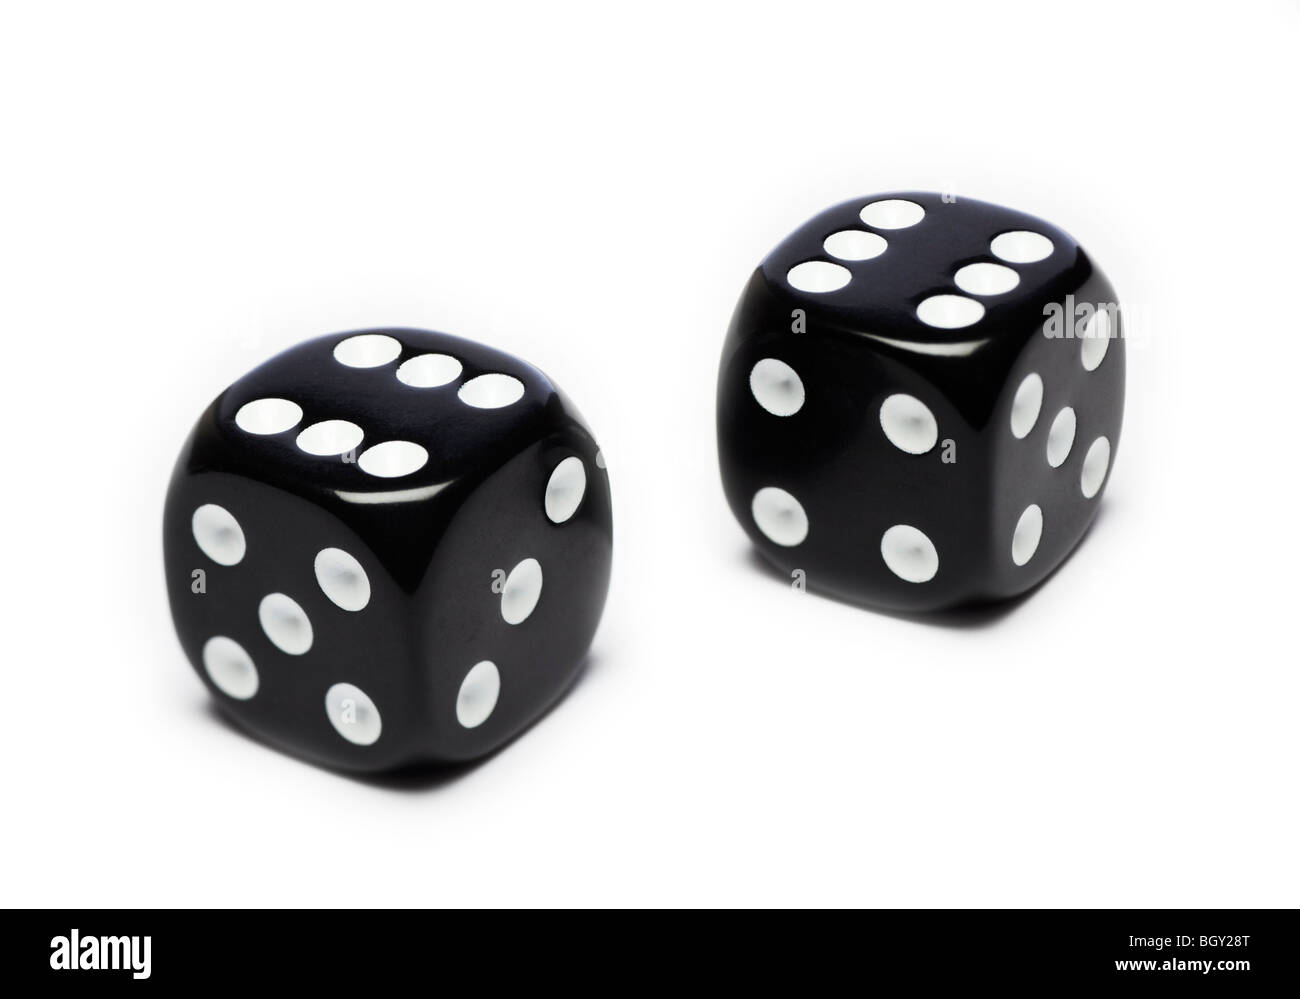 Pair of black dice - Stock Image